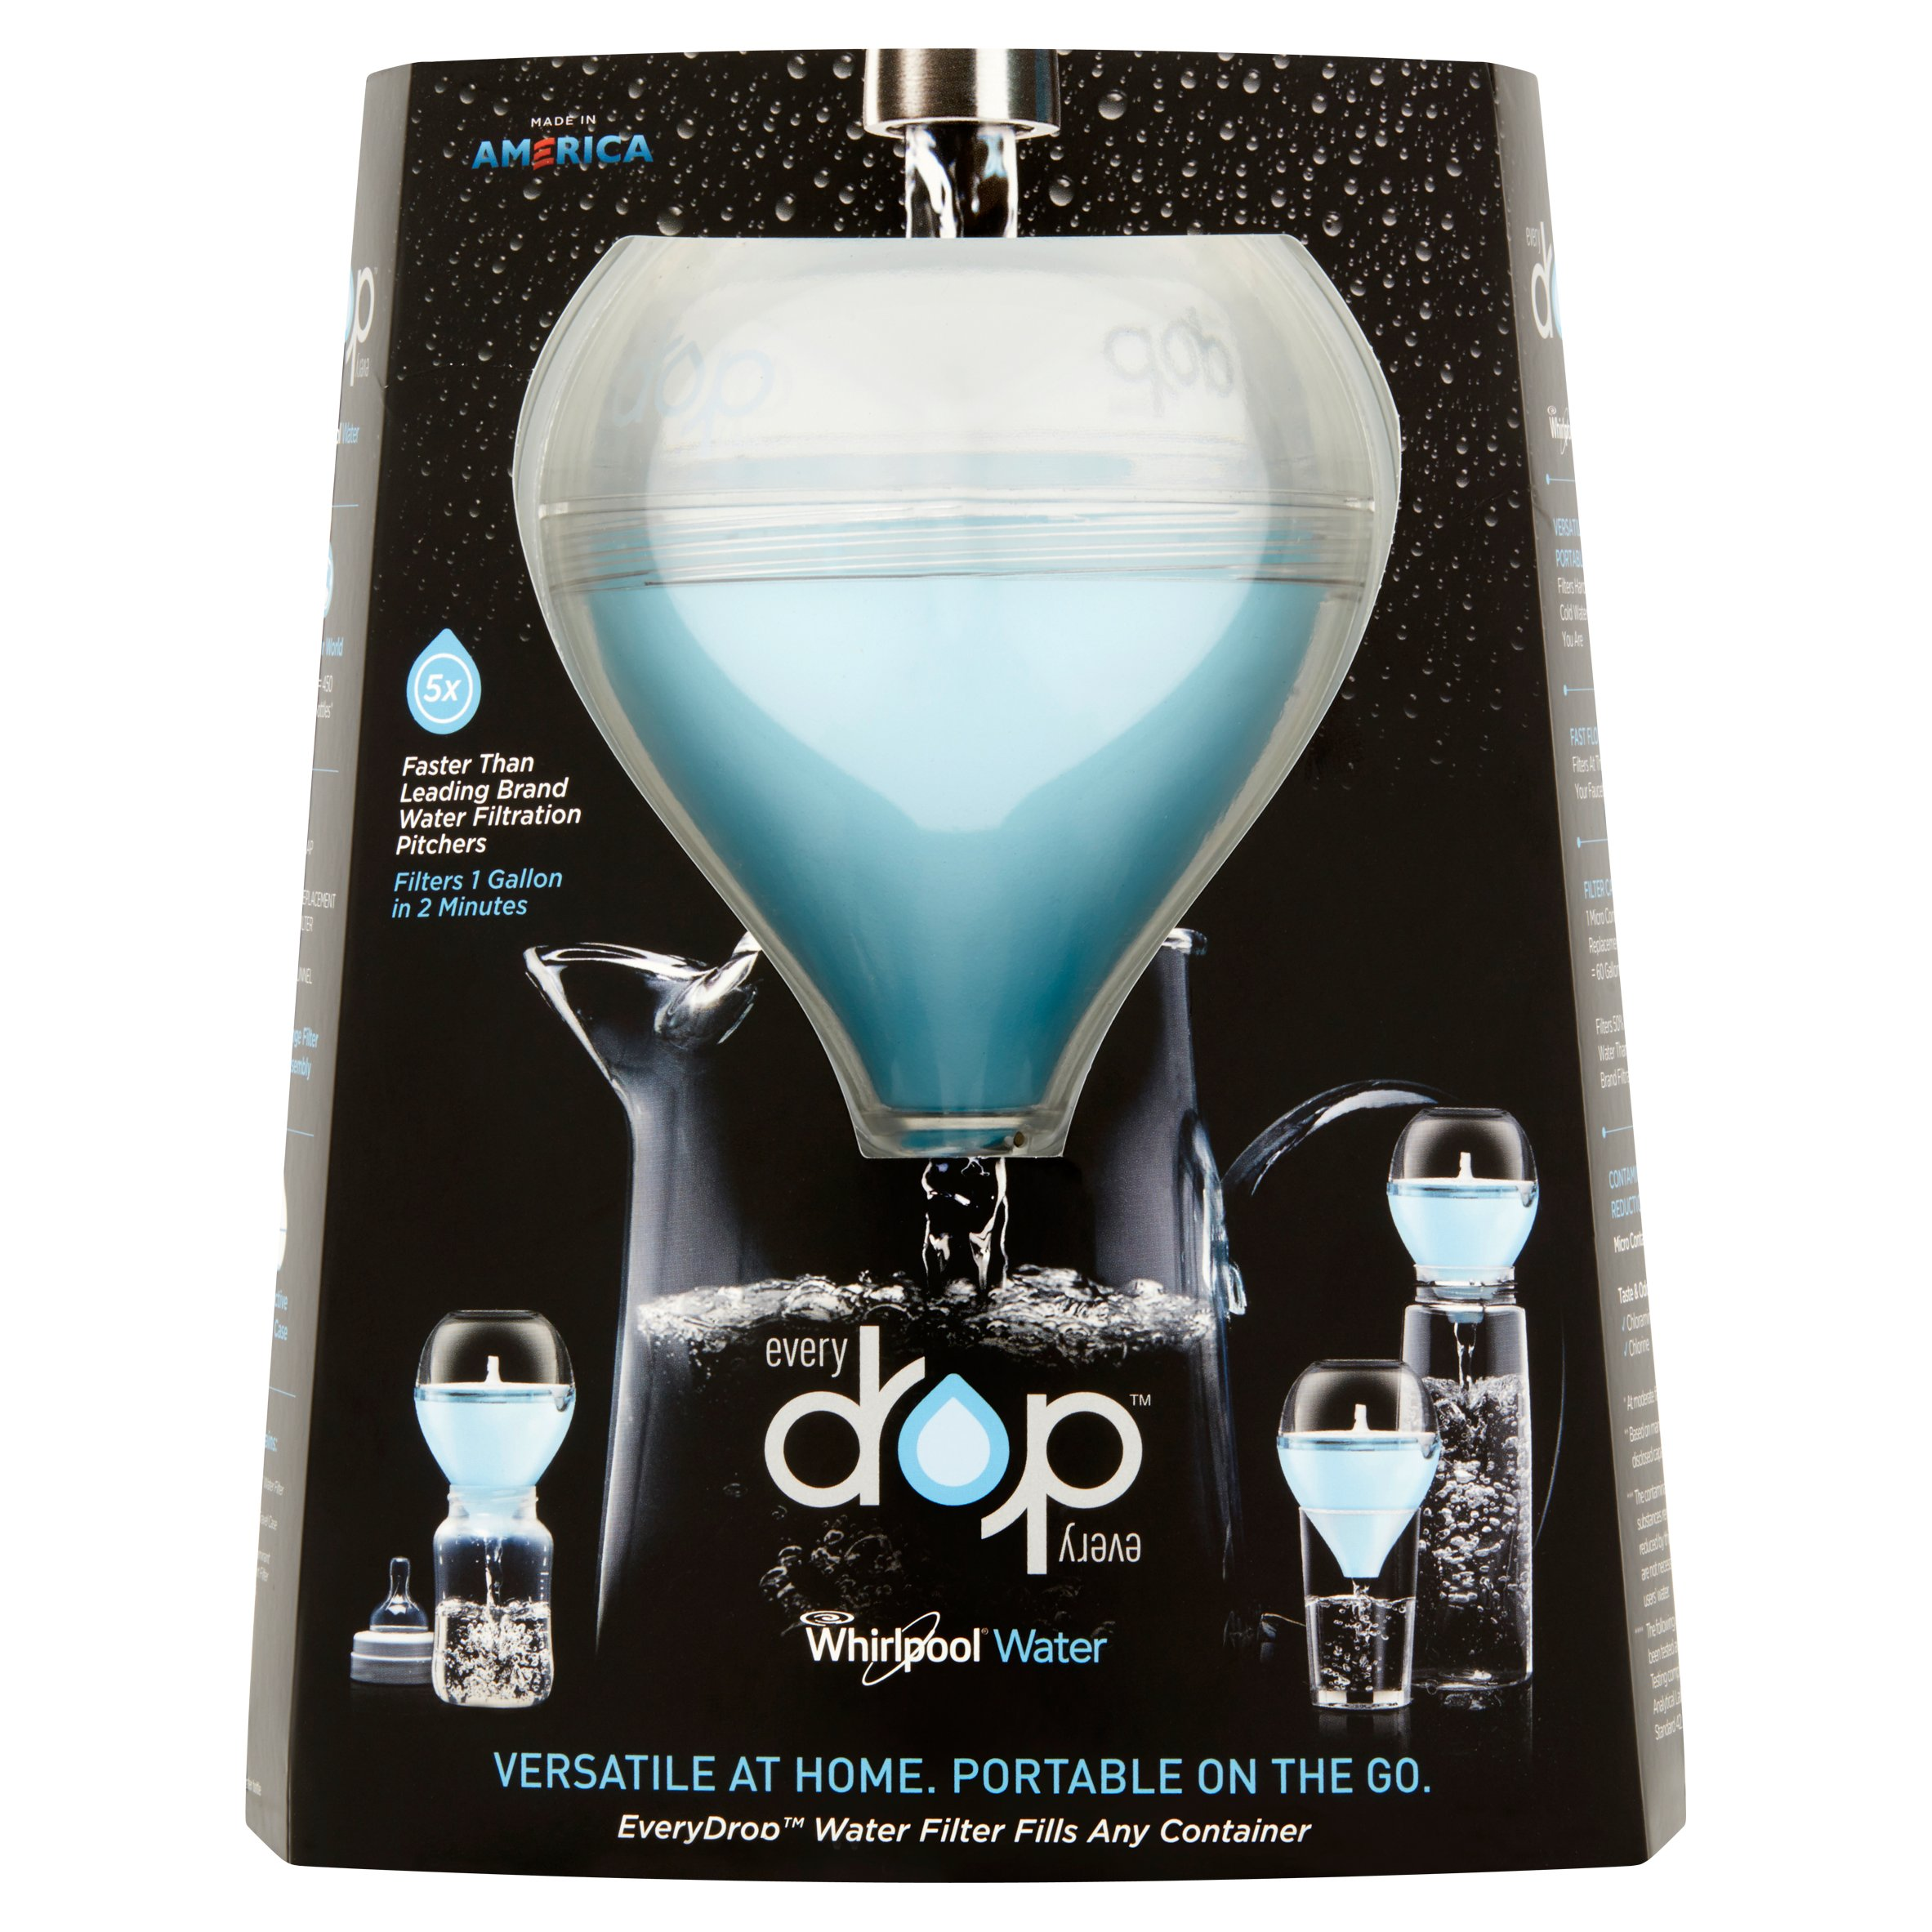 EveryDrop Whirlpool Water Filter Kit